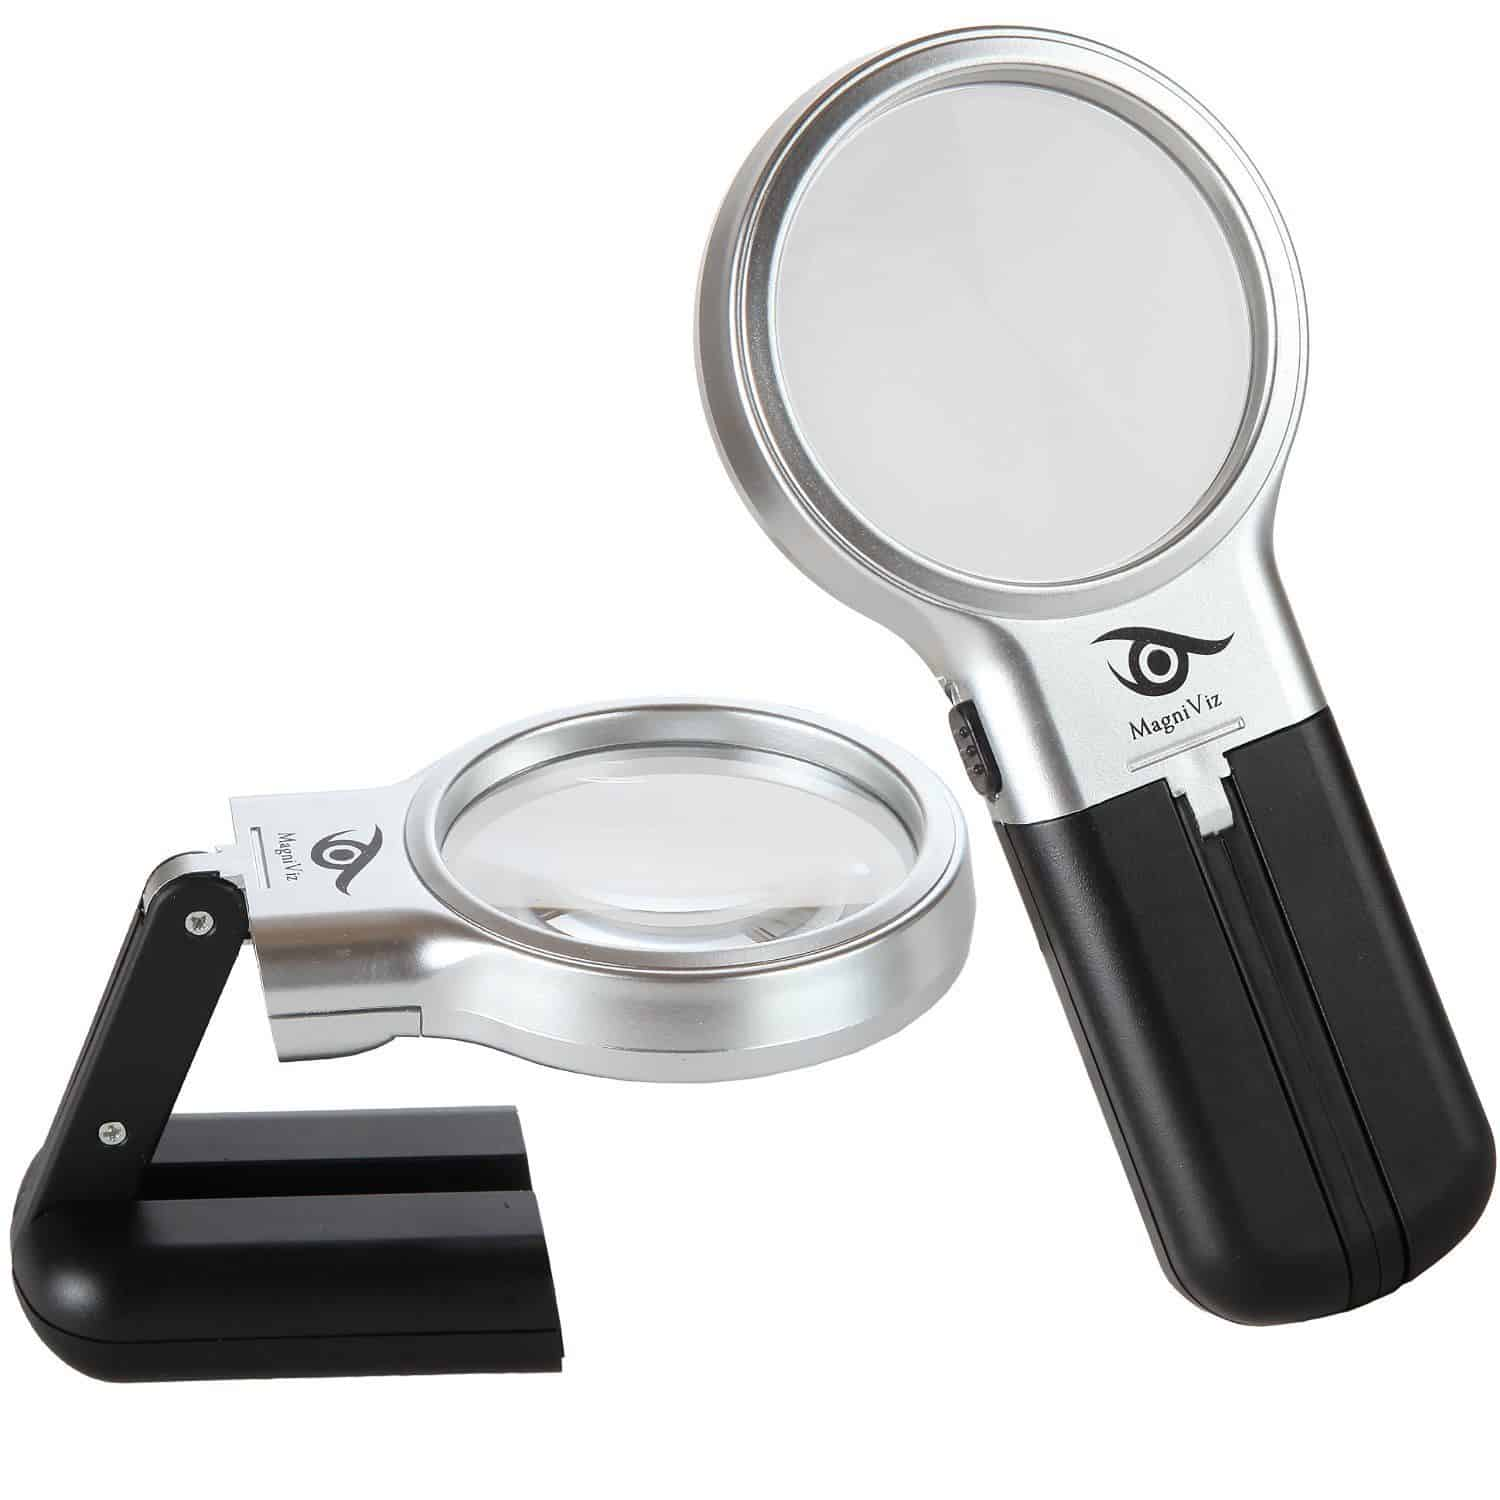 Best Magnifying Glass for Coins: 5 Outstanding Prospects